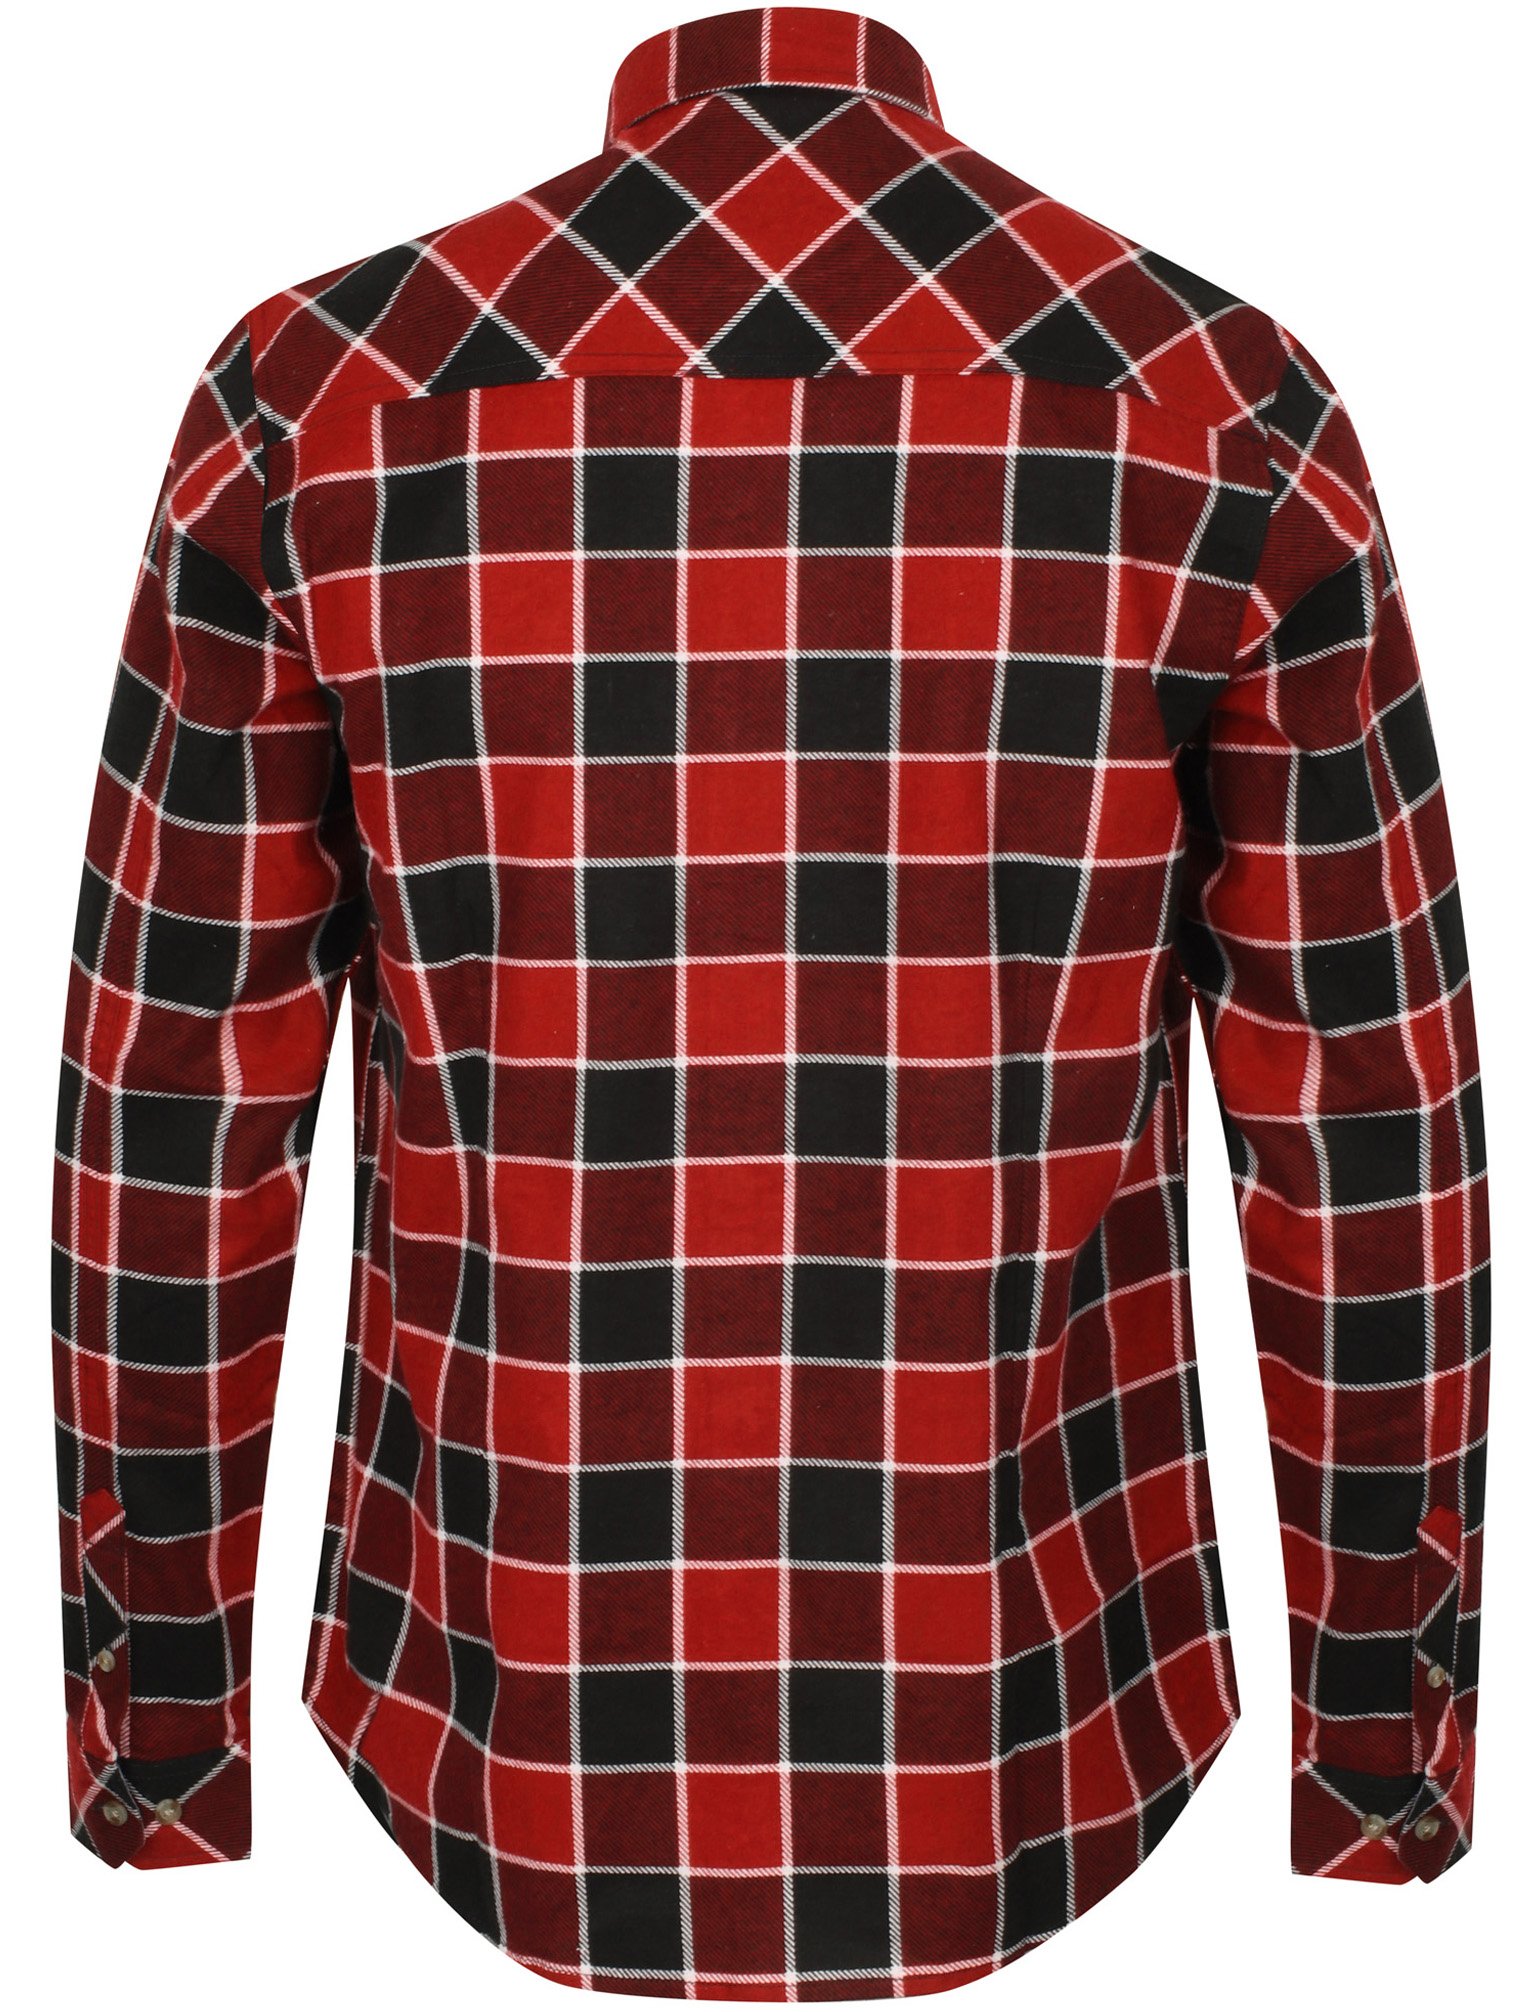 New-Mens-Tokyo-Laundry-Cotton-Long-Sleeve-Checked-Flannel-Shirt-Size-S-XL thumbnail 25